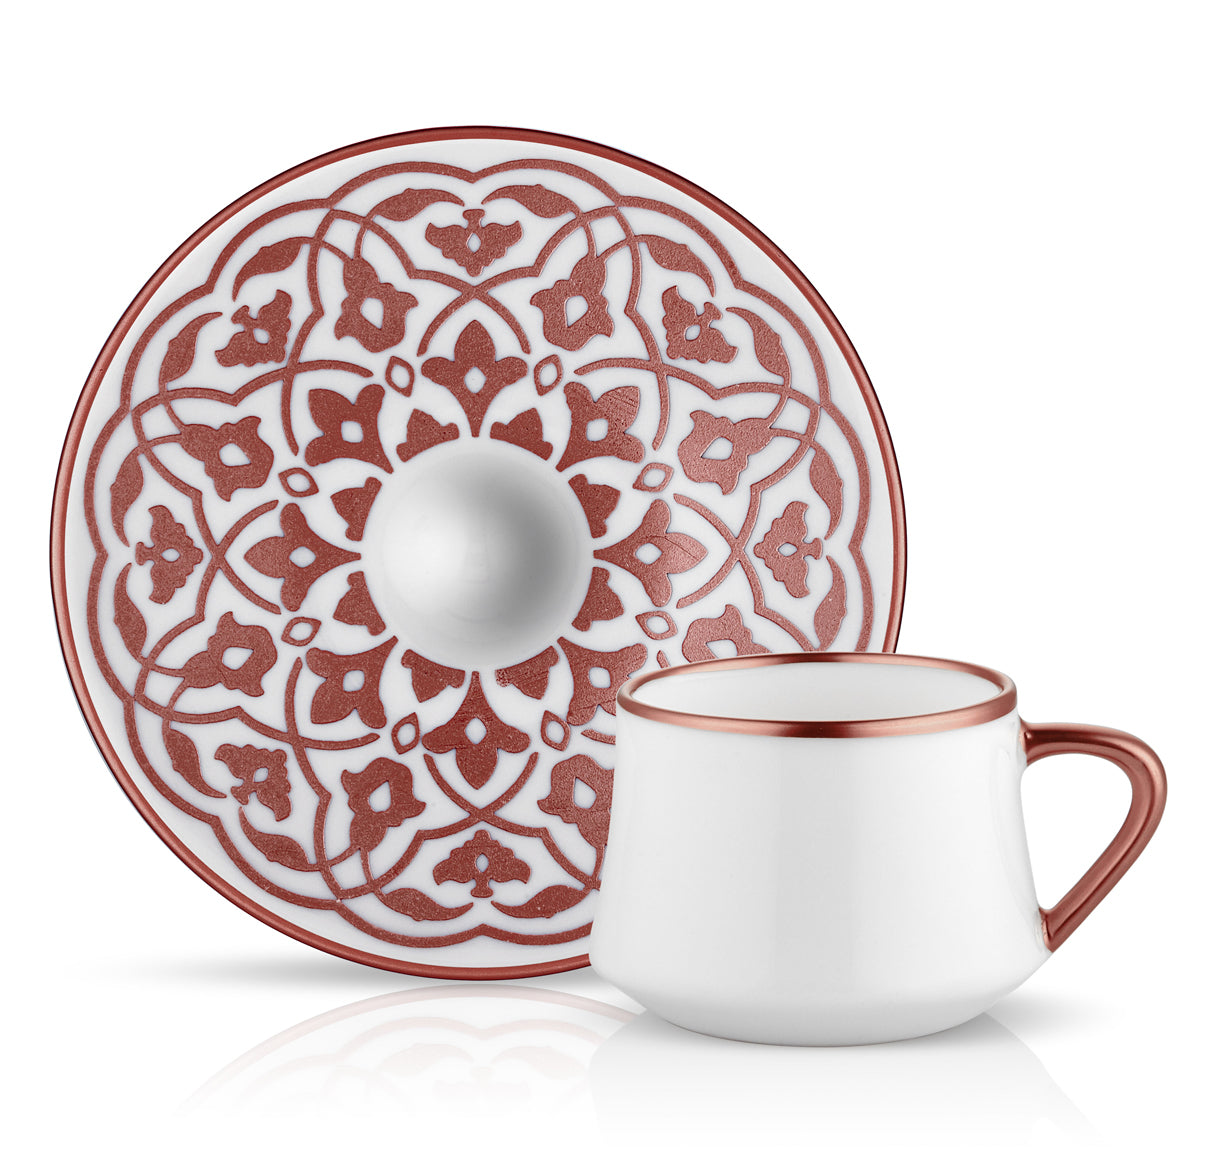 Sufi Tulip Rose Turkish Coffee Set - Set of 2